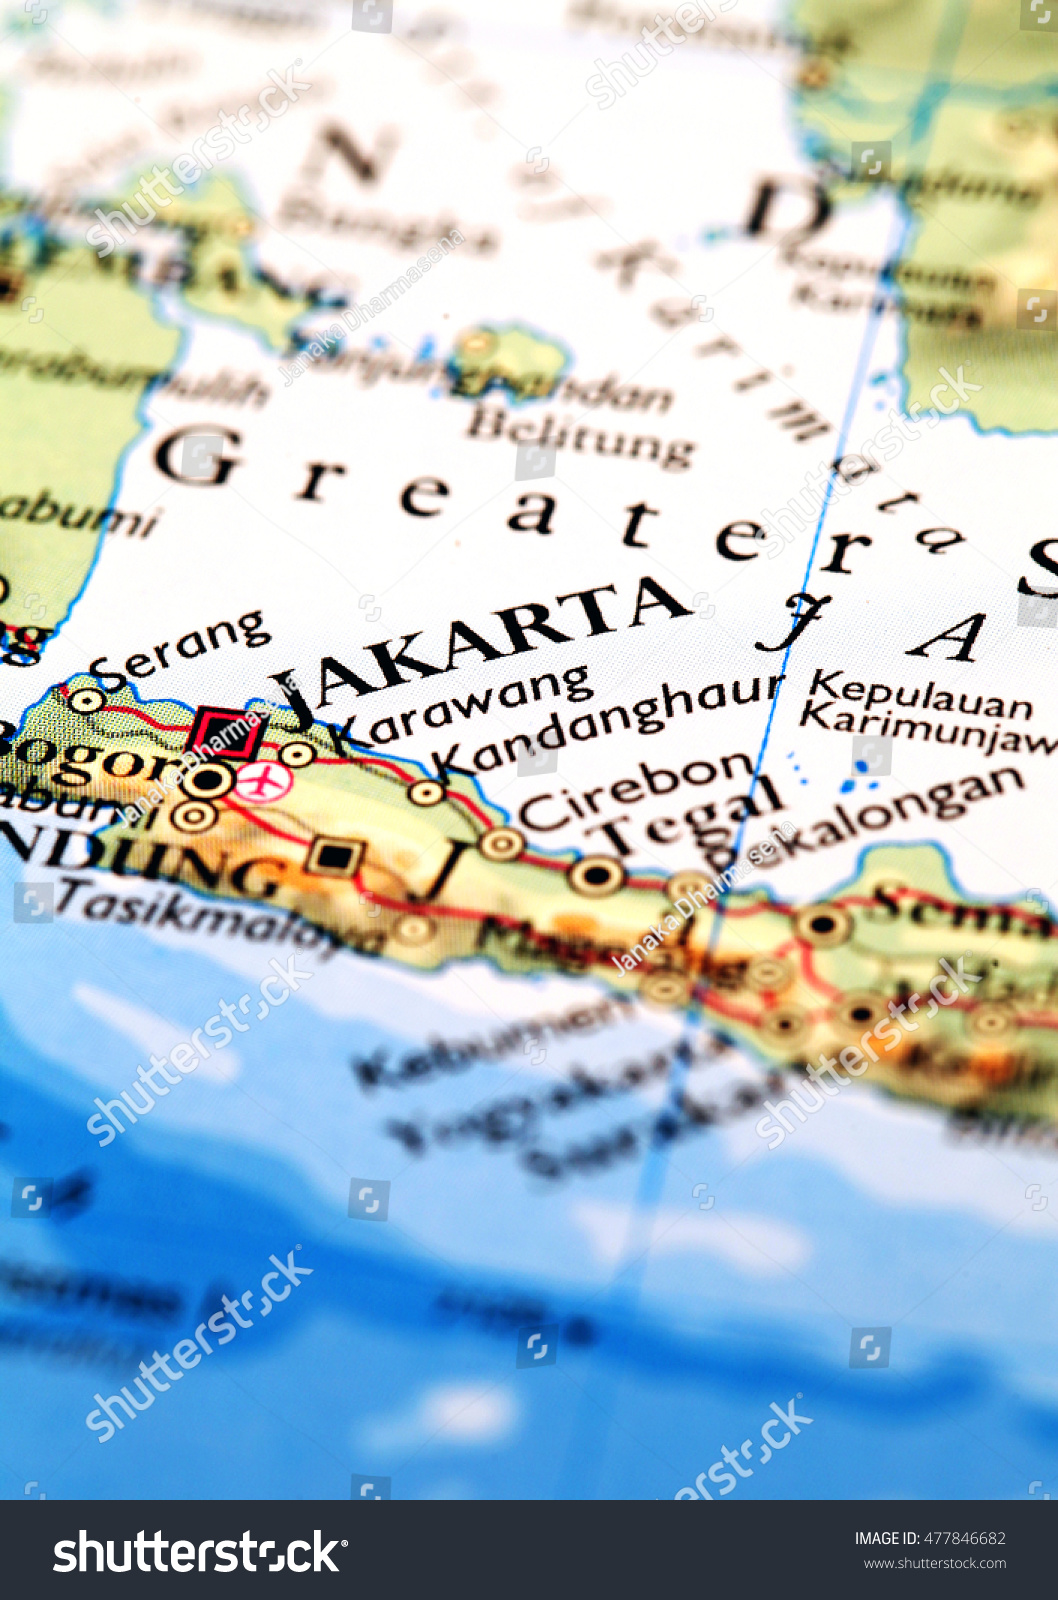 Jakarta indonesia on atlas world map stock photo 100 legal jakarta indonesia on atlas world map gumiabroncs Images